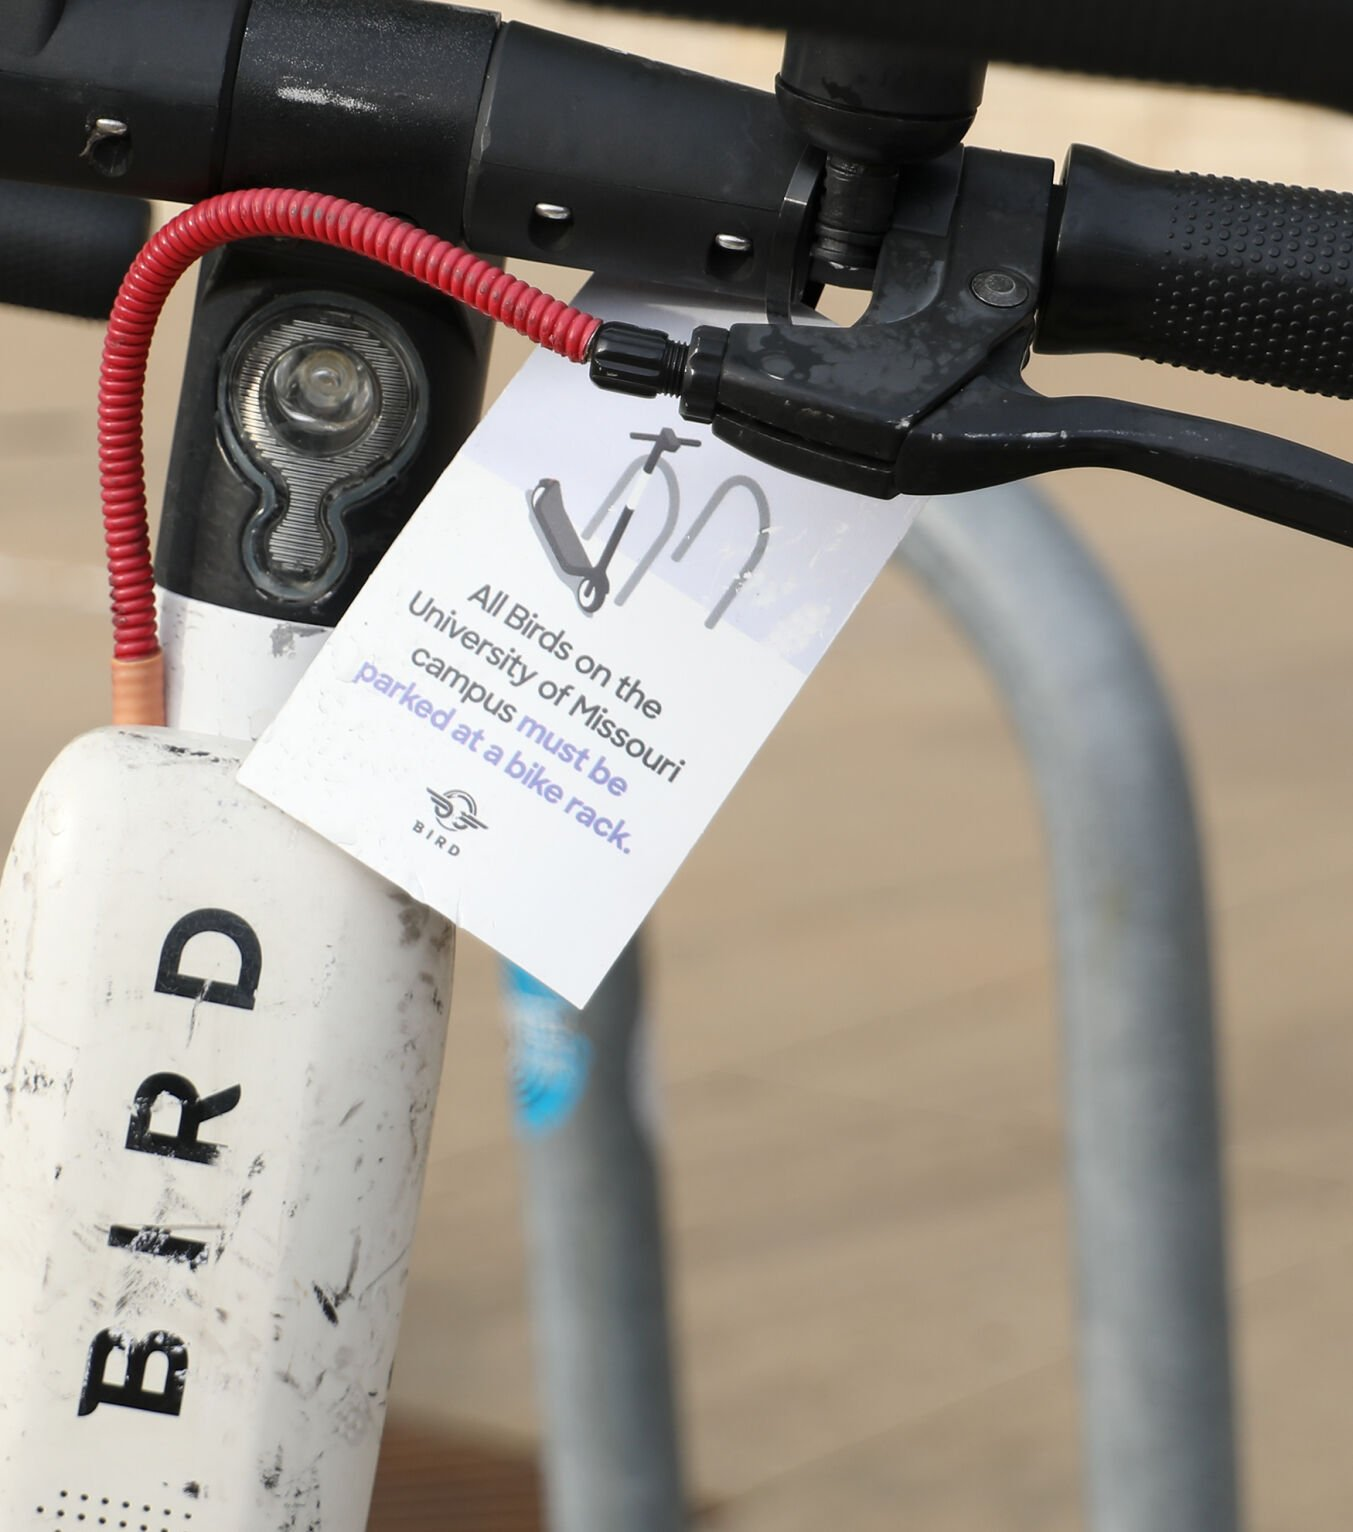 A tag reminding riders to park at bike racks hangs on a Bird scooter